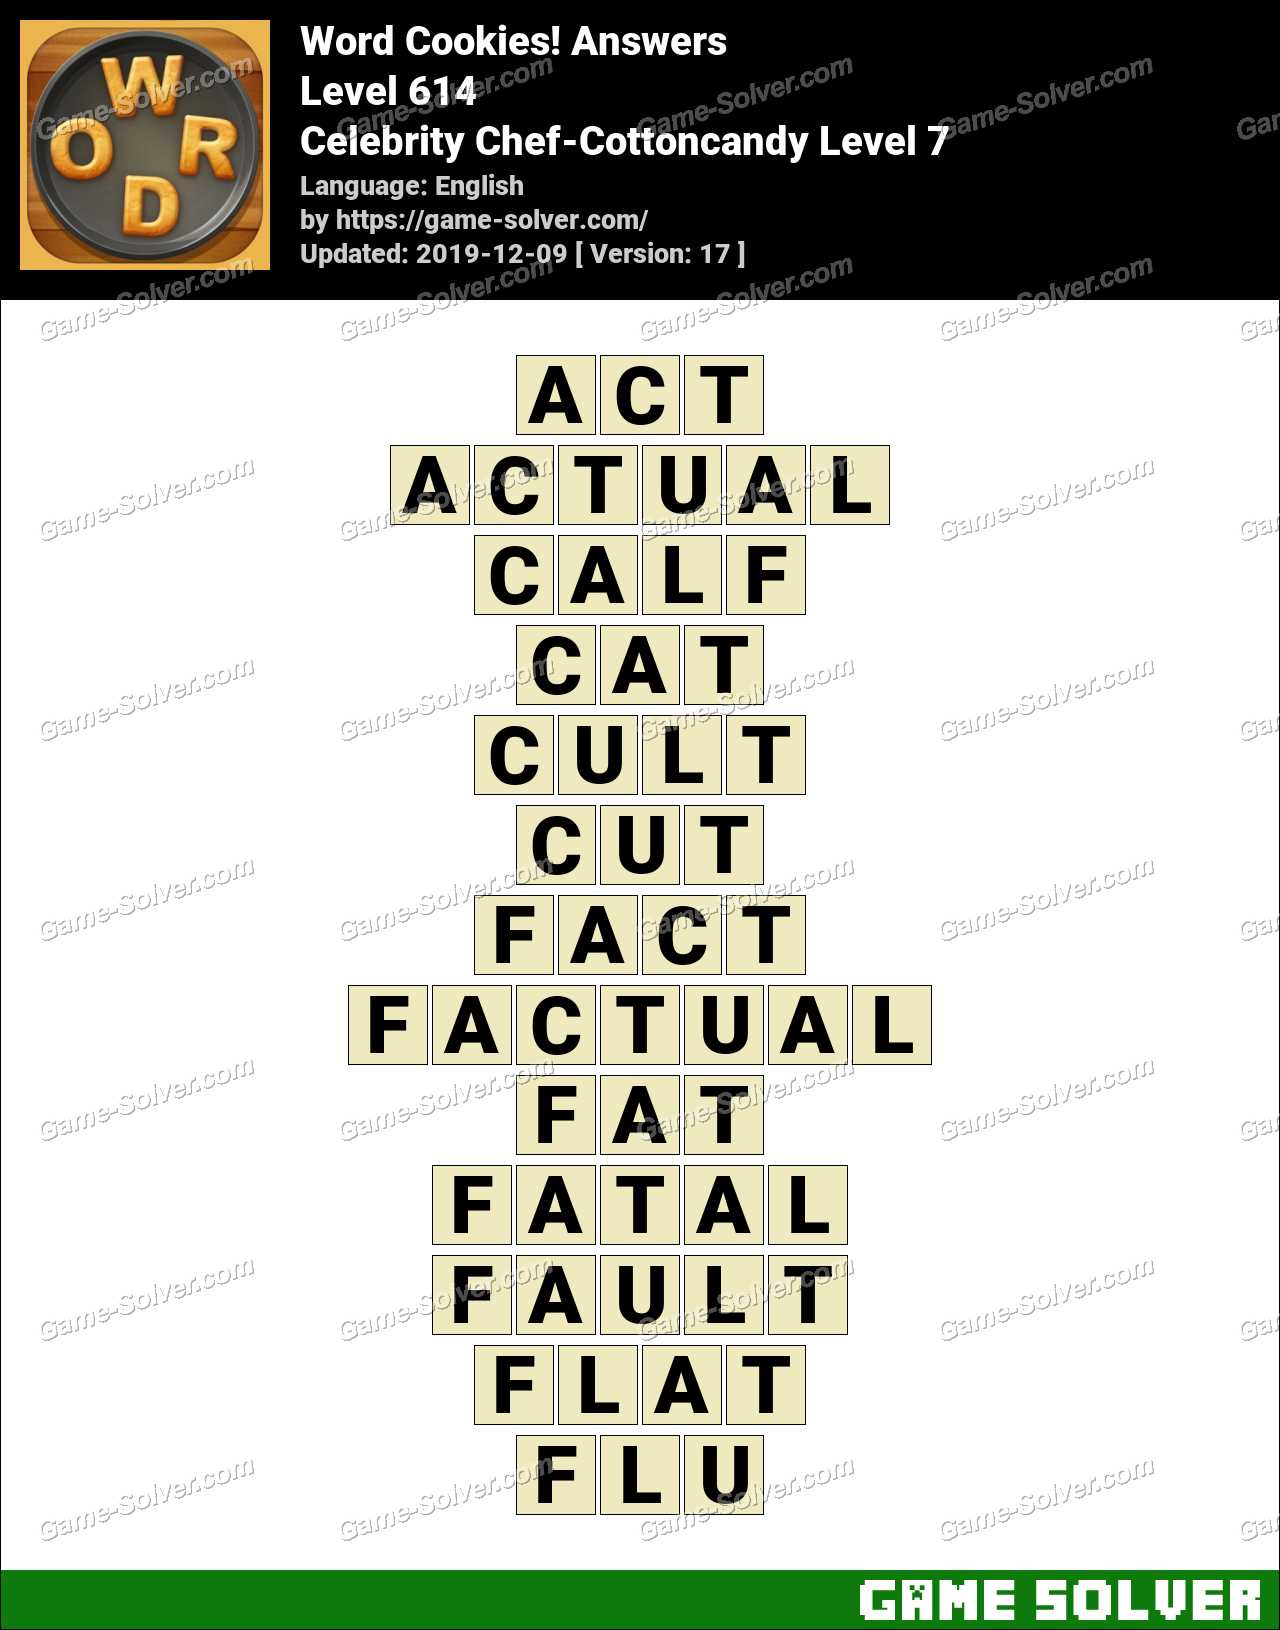 Word Cookies Celebrity Chef-Cottoncandy Level 7 Answers